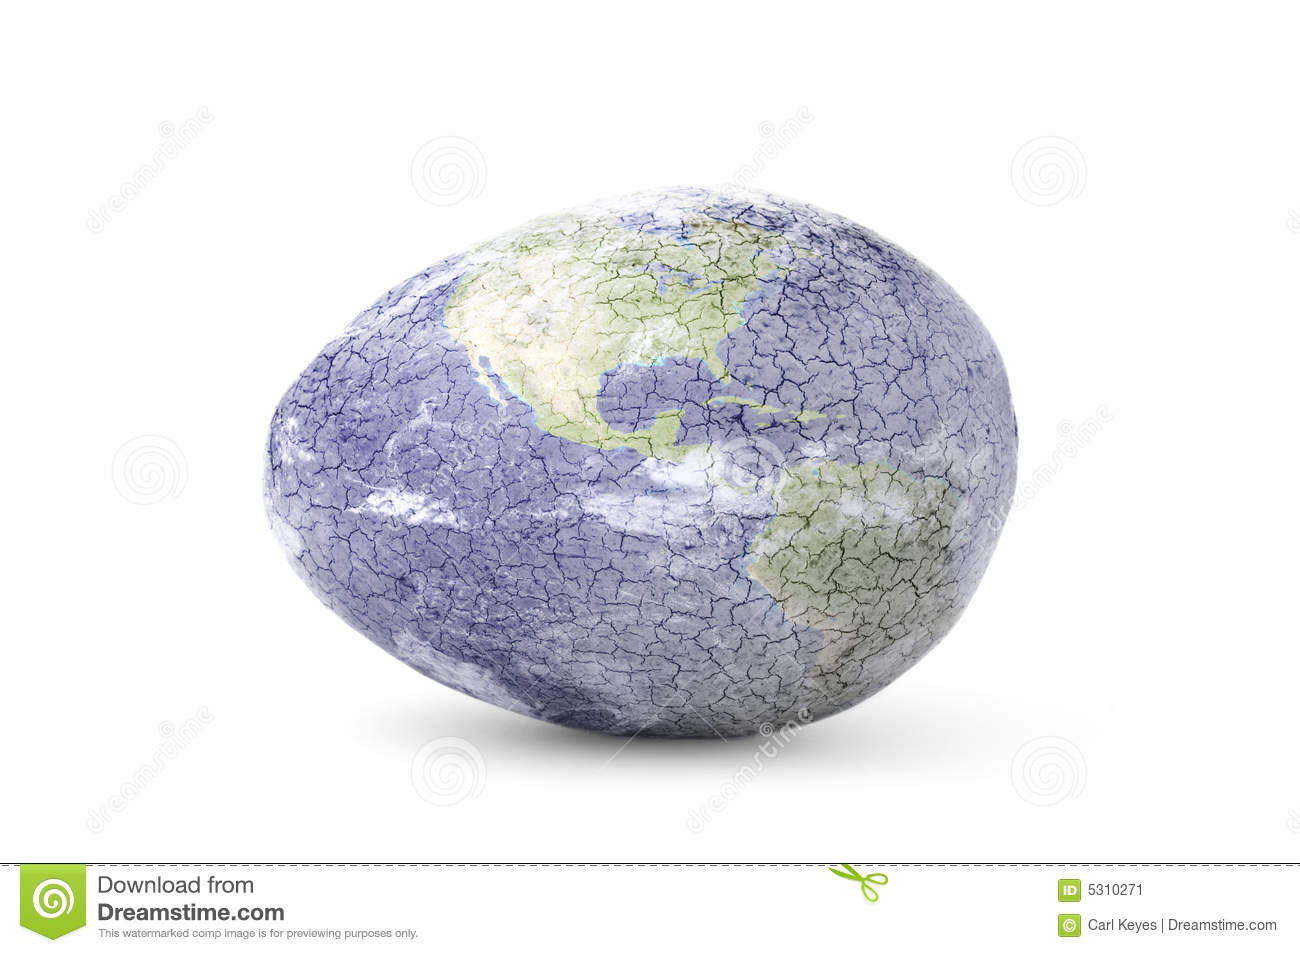 eart map with Stock Image Cracked Earth Egg White Image5310271 on Flat Earth Maps SET Gleasons Standard 24x36 282061831777 likewise Google Earth en softonic together with 3233 furthermore Earth in addition Pla  Earth Drawing.